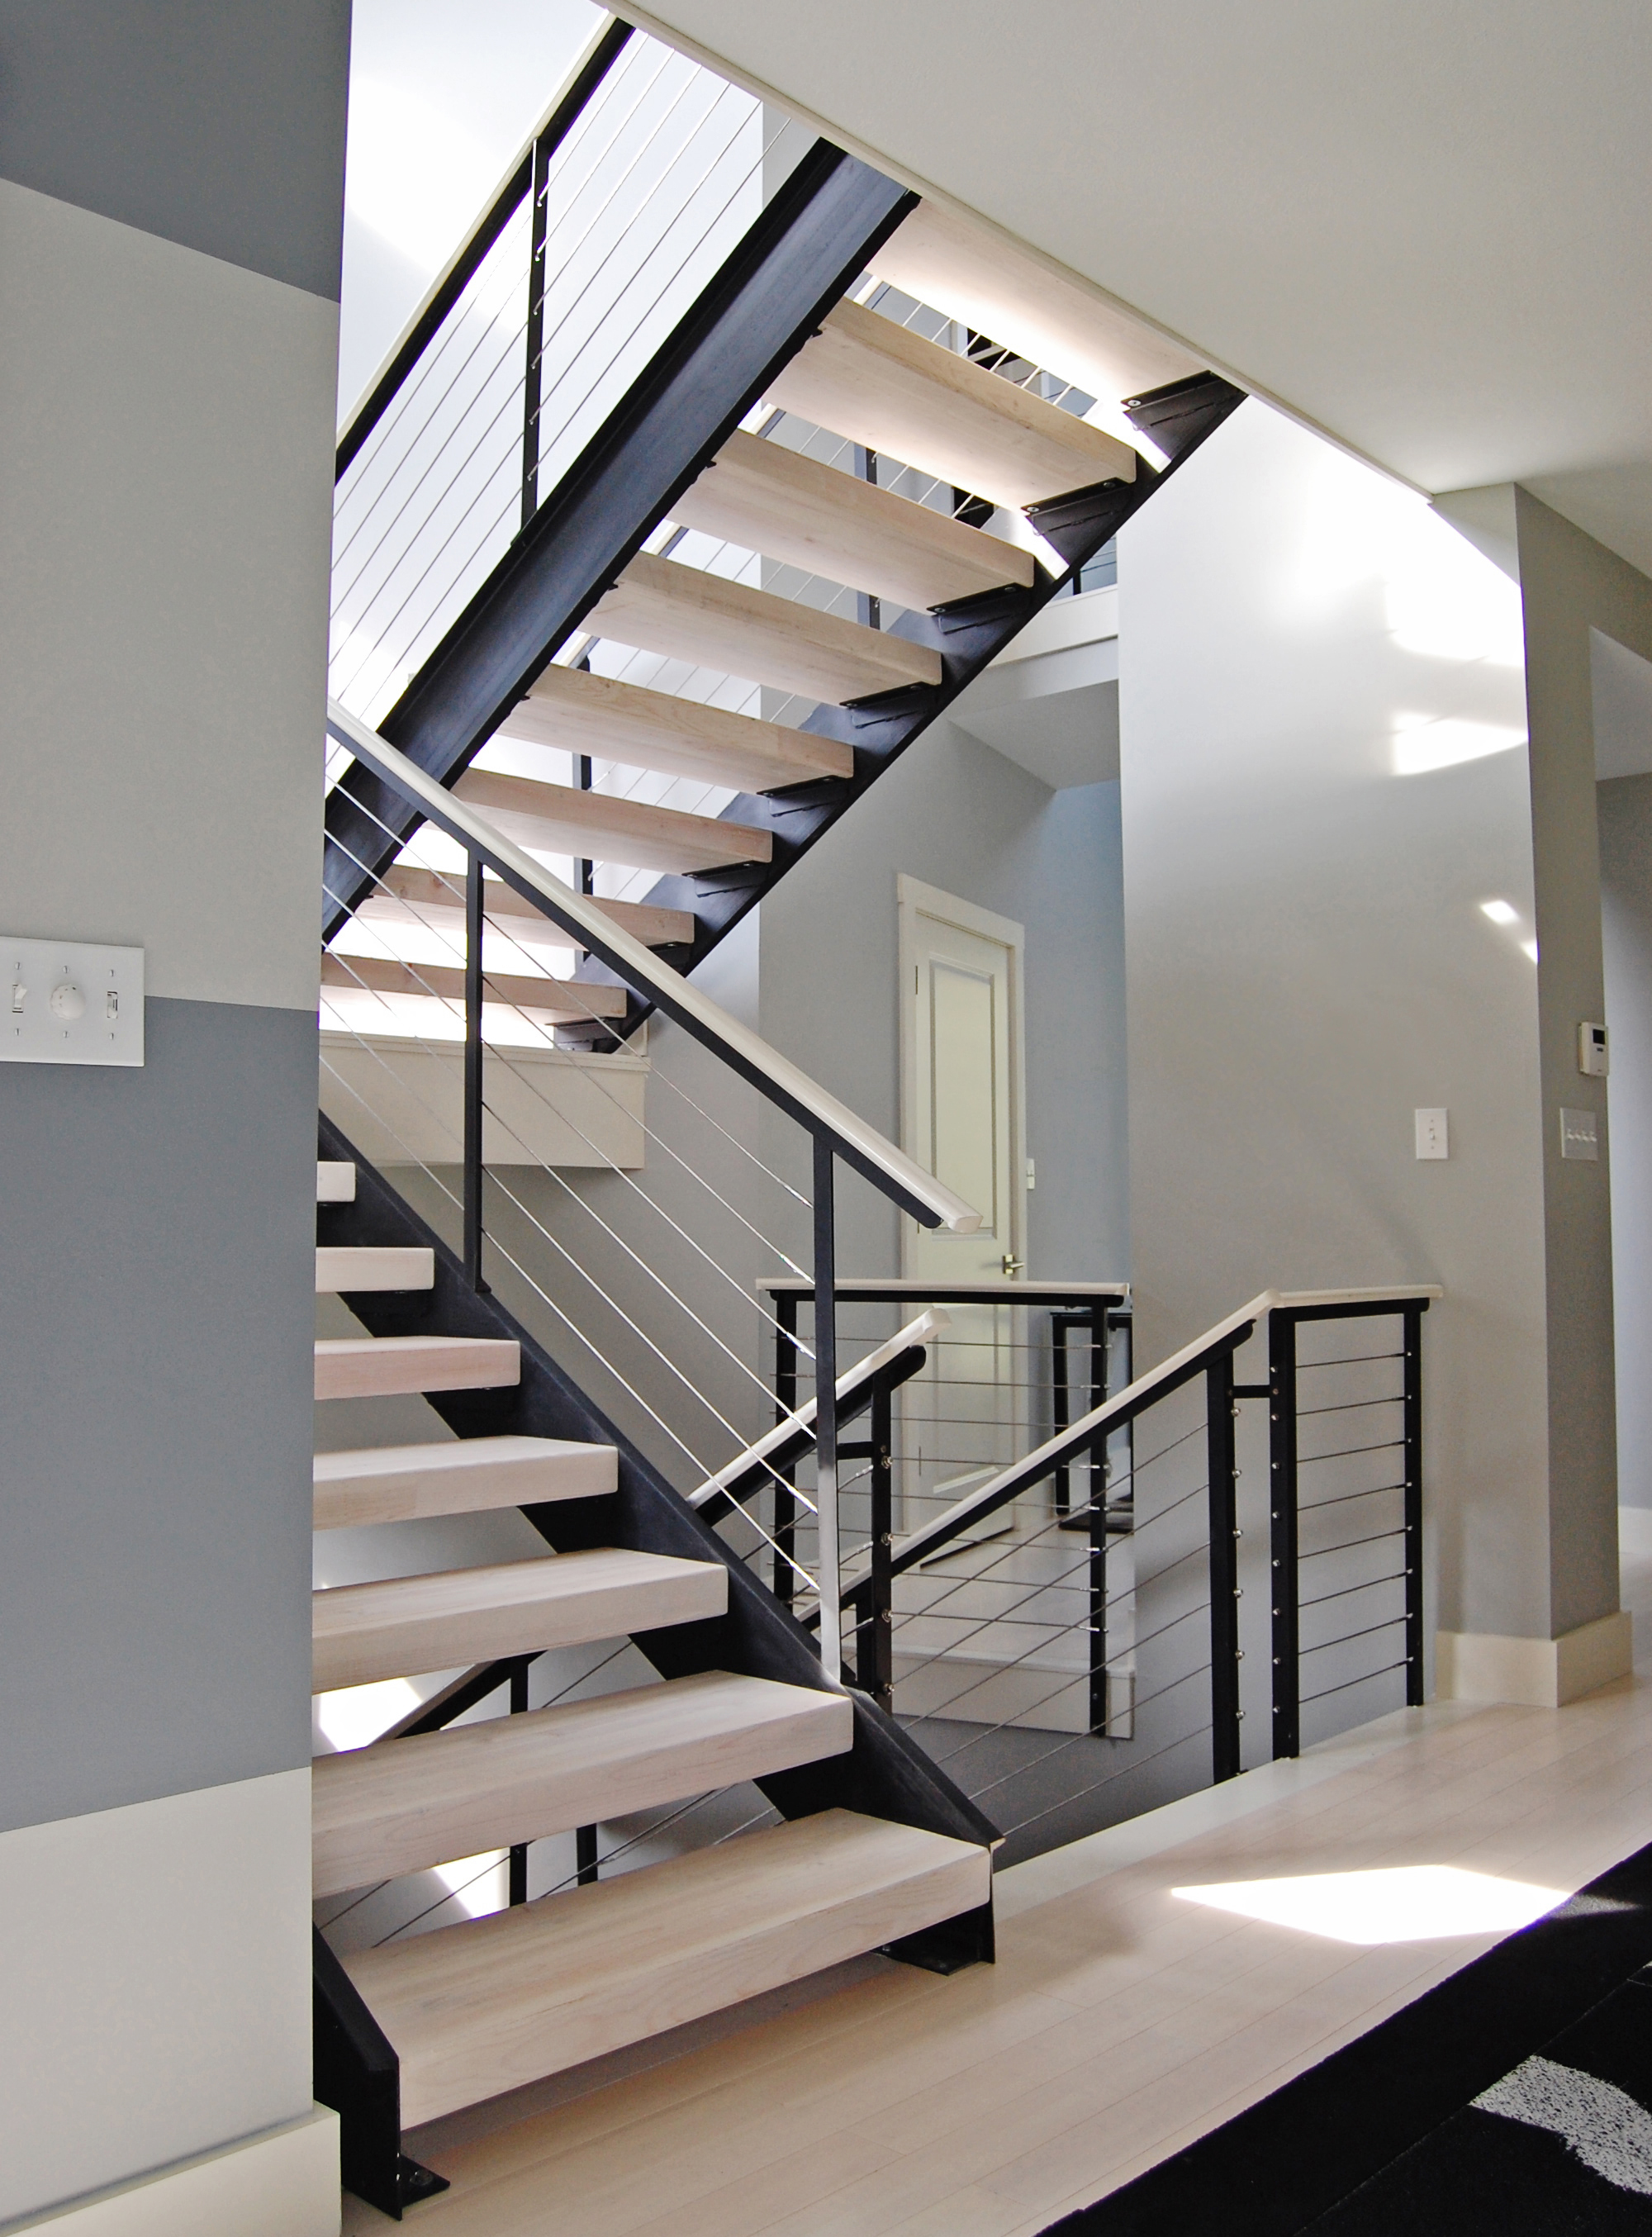 Stair Railing Ideas. Cable Infill U0026 Fittings For Stylish Contemporary  Stairway